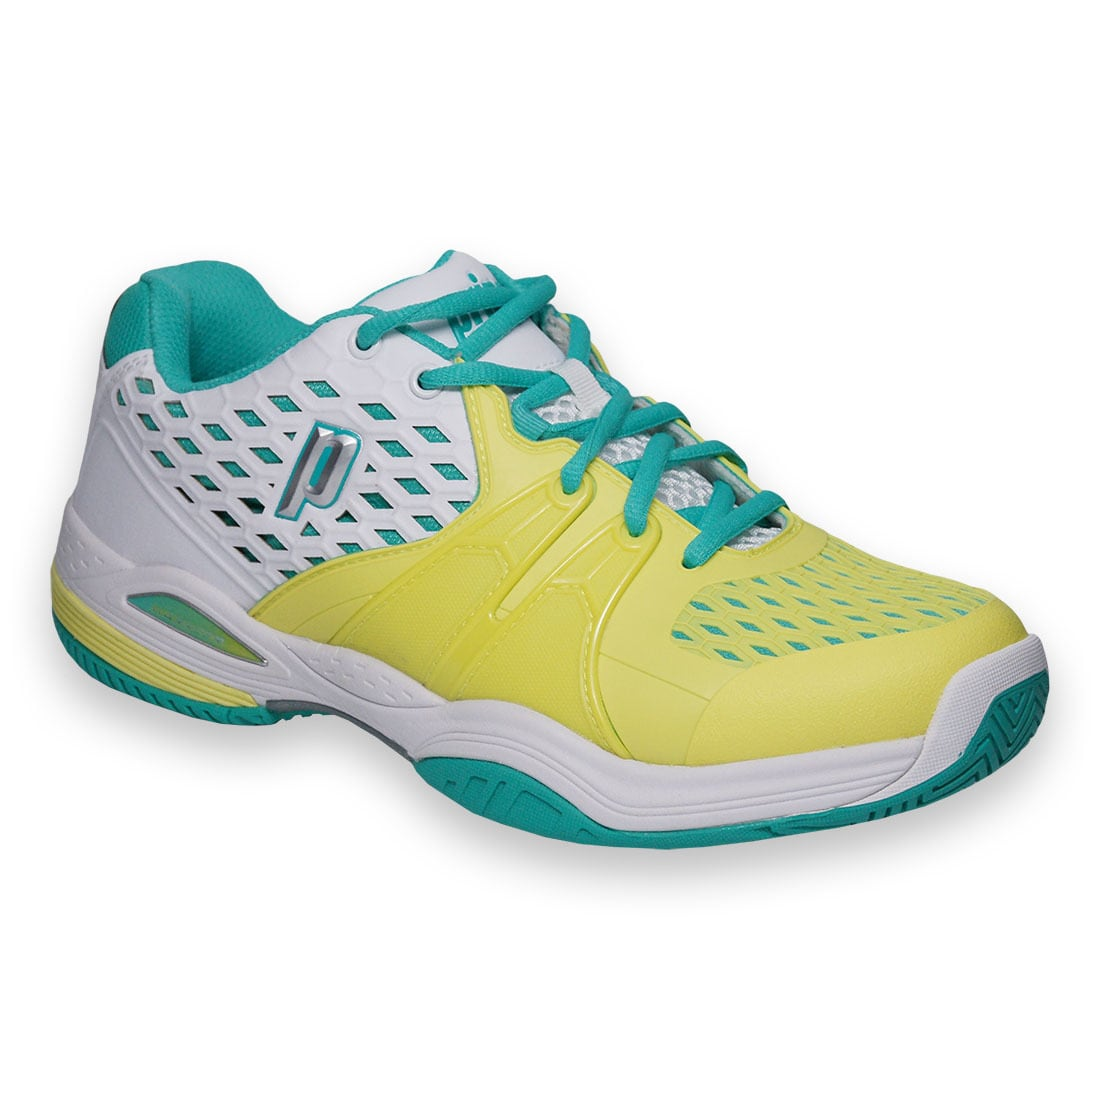 Prince  Warrior Women's Multicolored Mesh Tennis Shoe